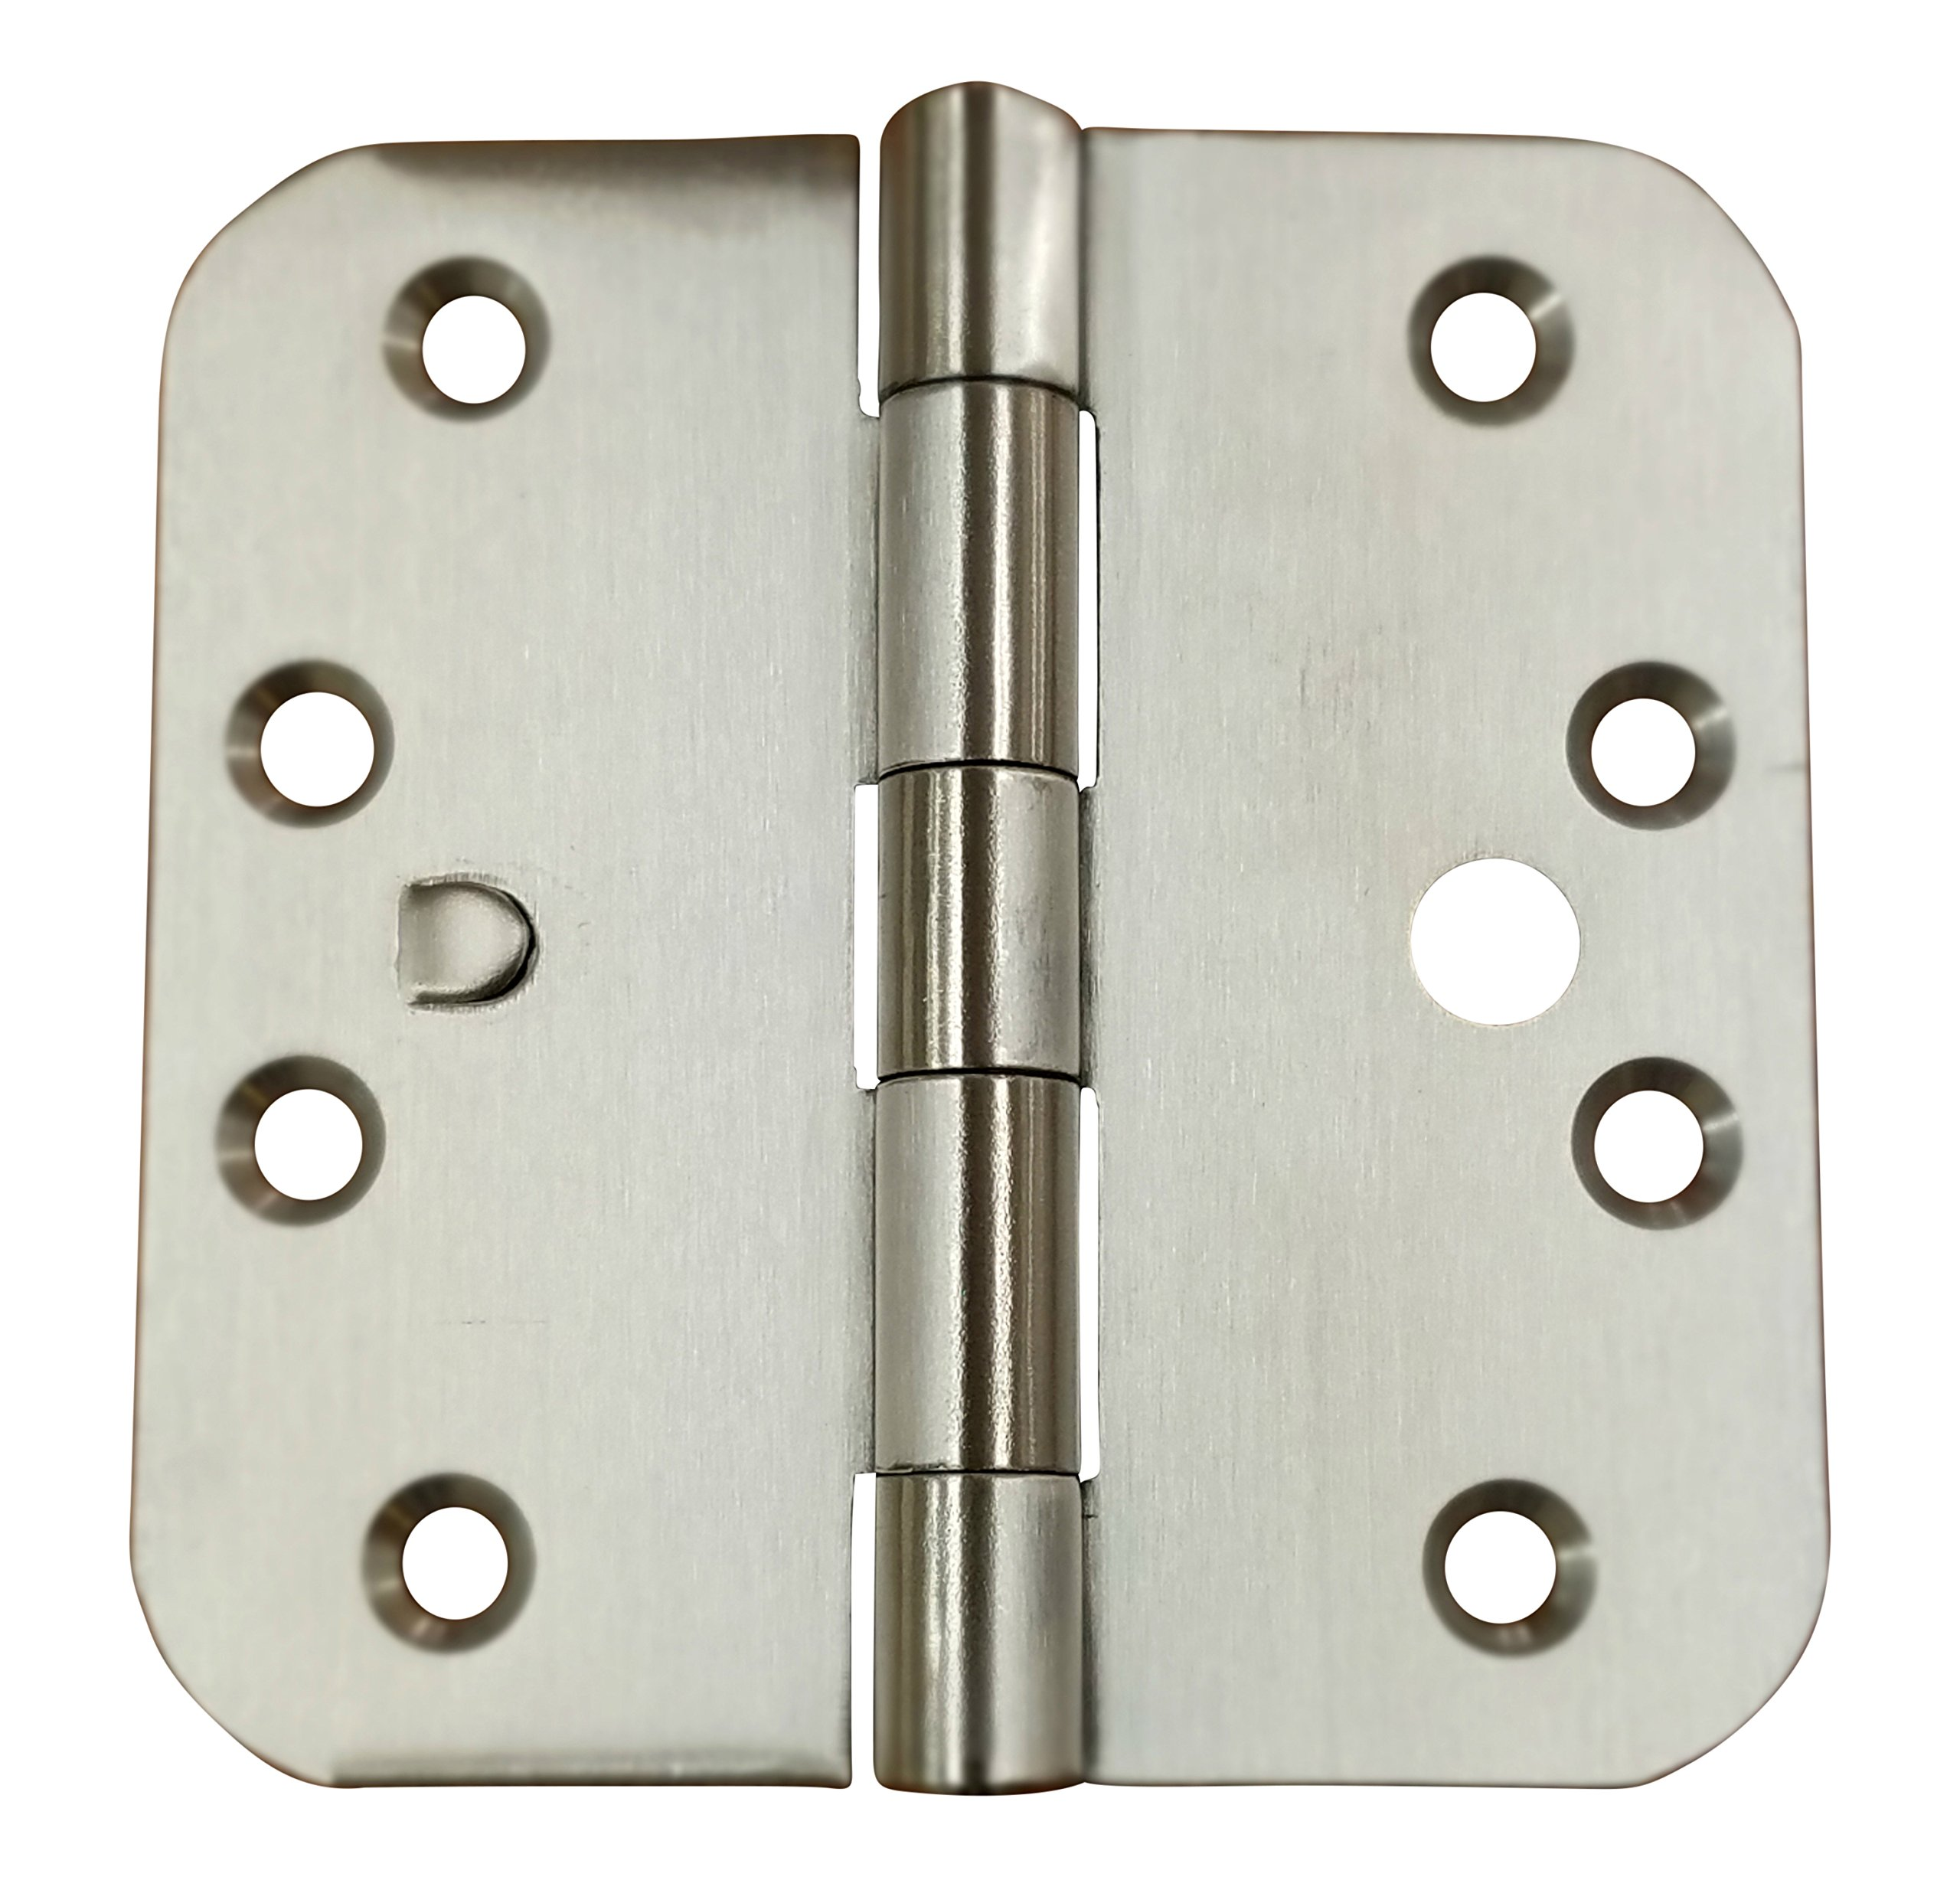 Security Door Hinges - Stainless Steel - 4'' x 4'' with 5/8'' Radius - Security Tab - Arch Hole Pattern - 2 Pack